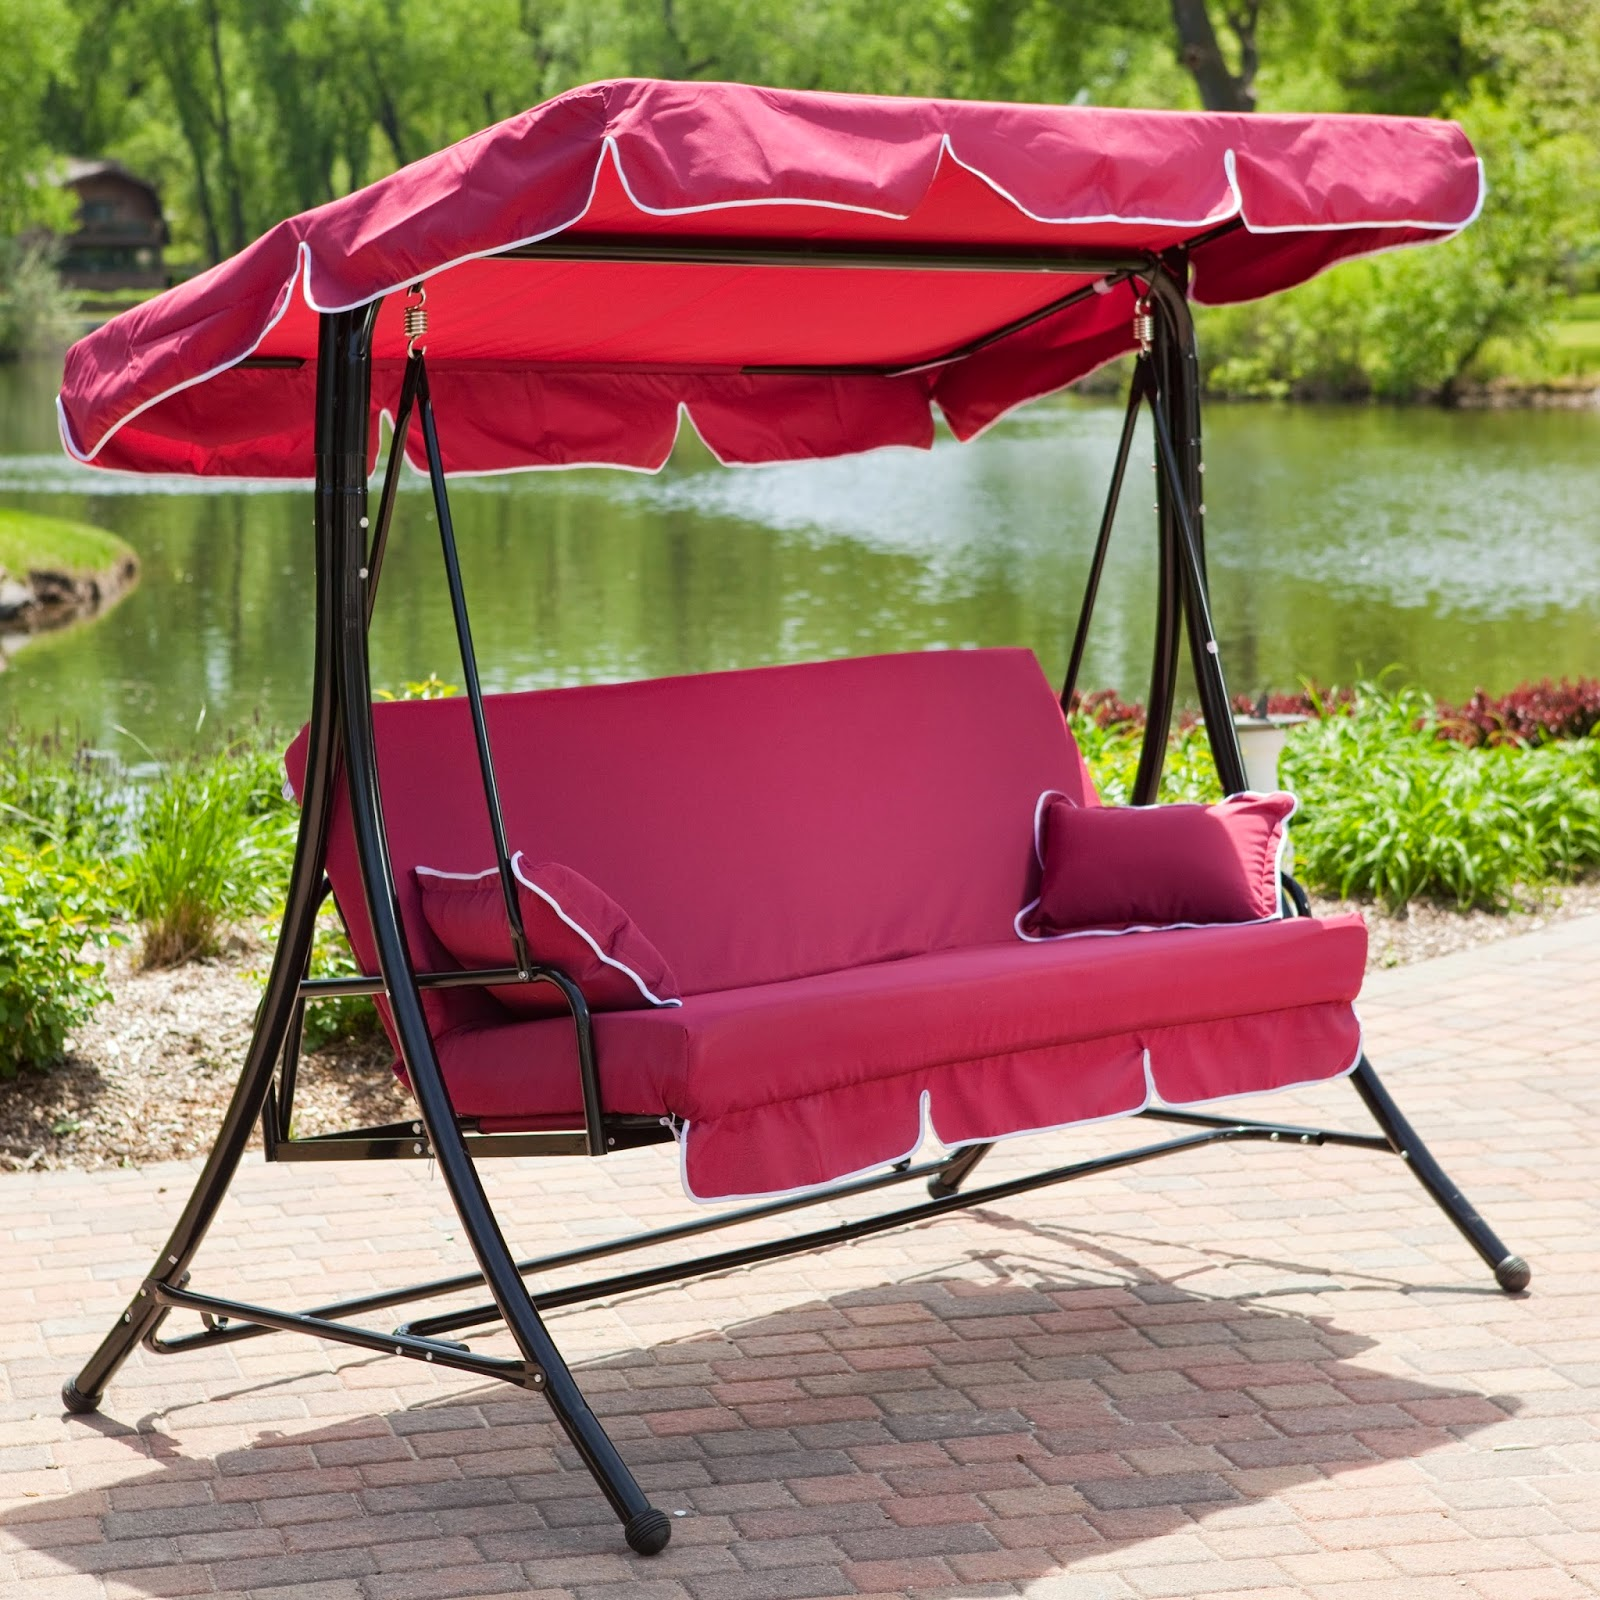 Patio Glider Swing With Canopy ~ Instant Knowledge